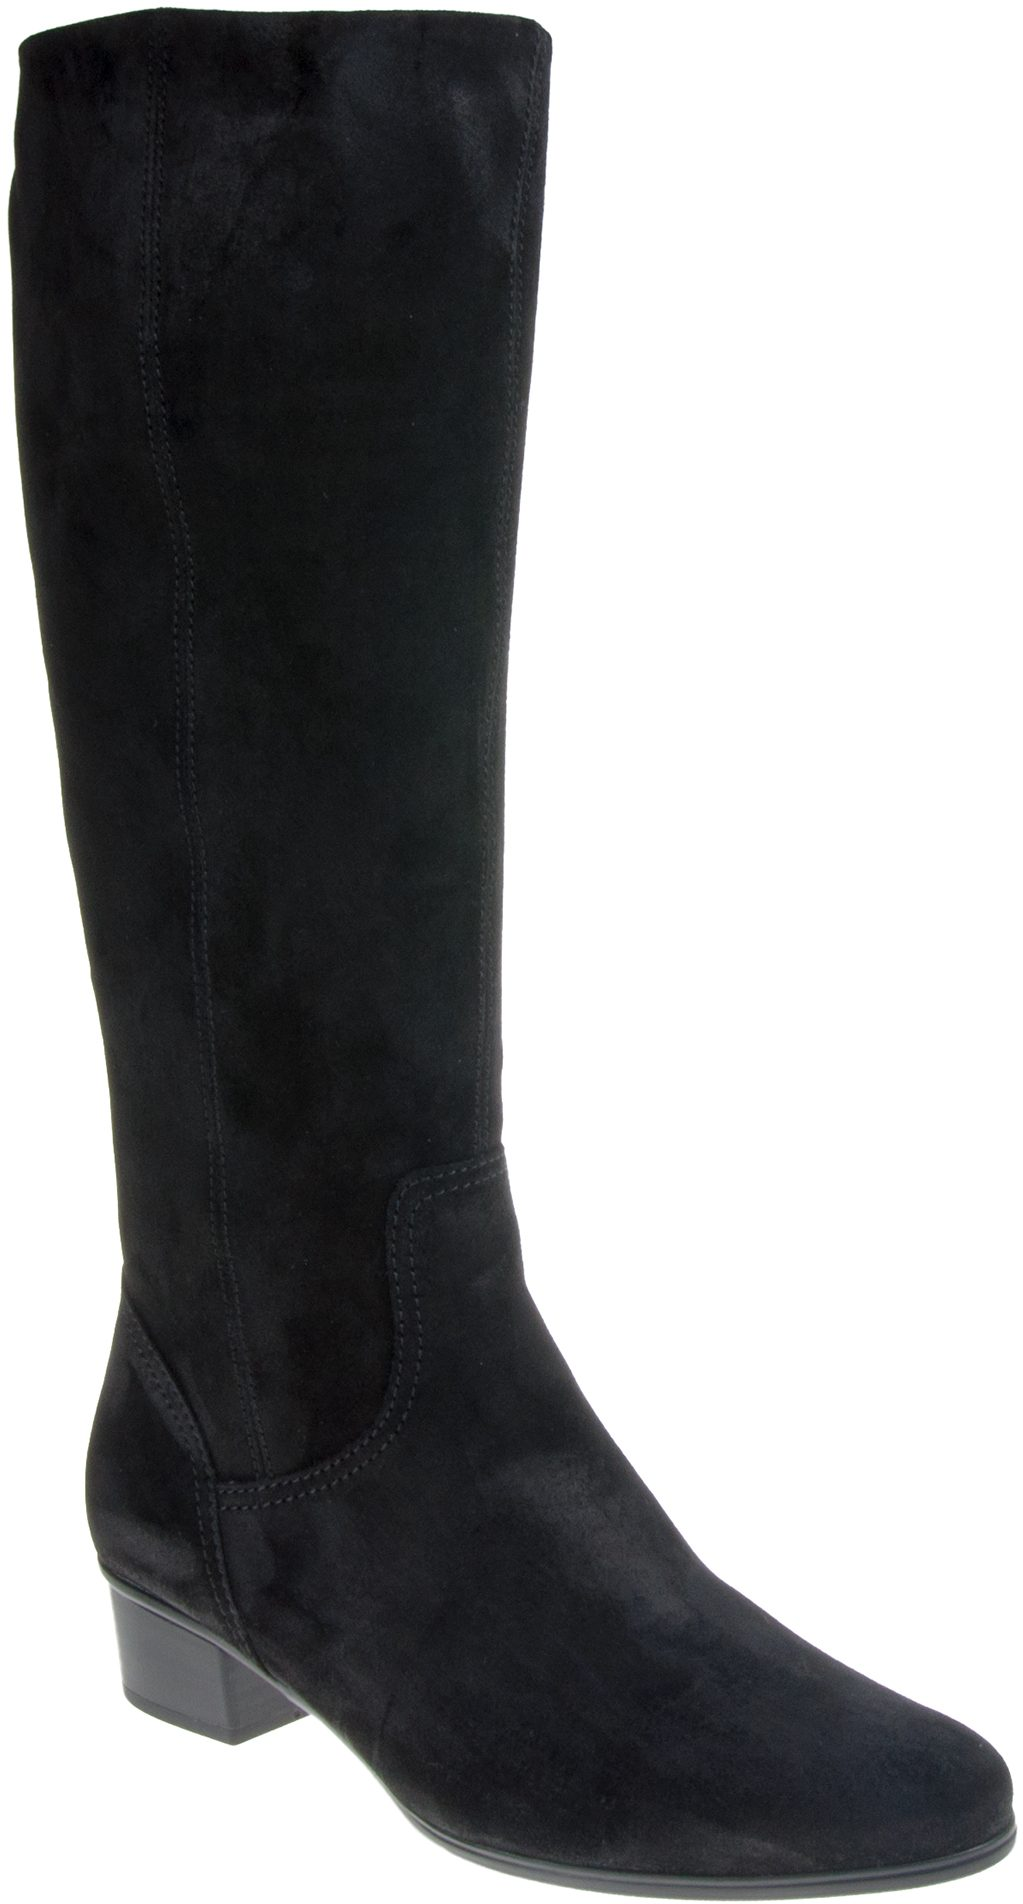 256ed73d1ae All Womens - Gabor - Gabor  Womens Boots - Humphries Shoes